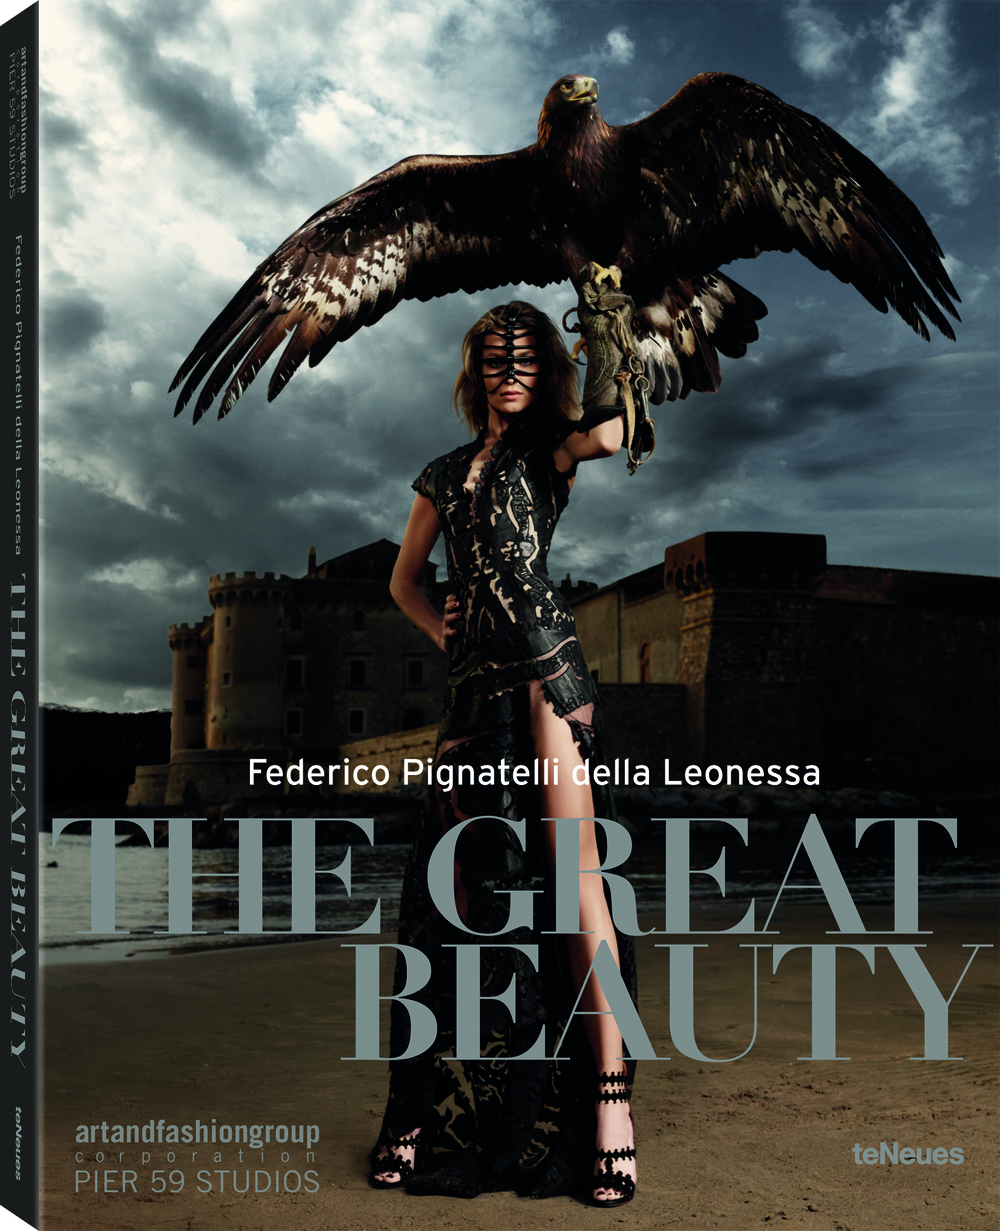 © The Great Beauty by Federico Pignatelli della Leonessa, to be published by teNeues in November 2015, € 49,90, www.teneues.com. Photo © 2015 Art and Fashion Group. All rights reserved. www.pier59studios.com, www.artandfashiongroup.com